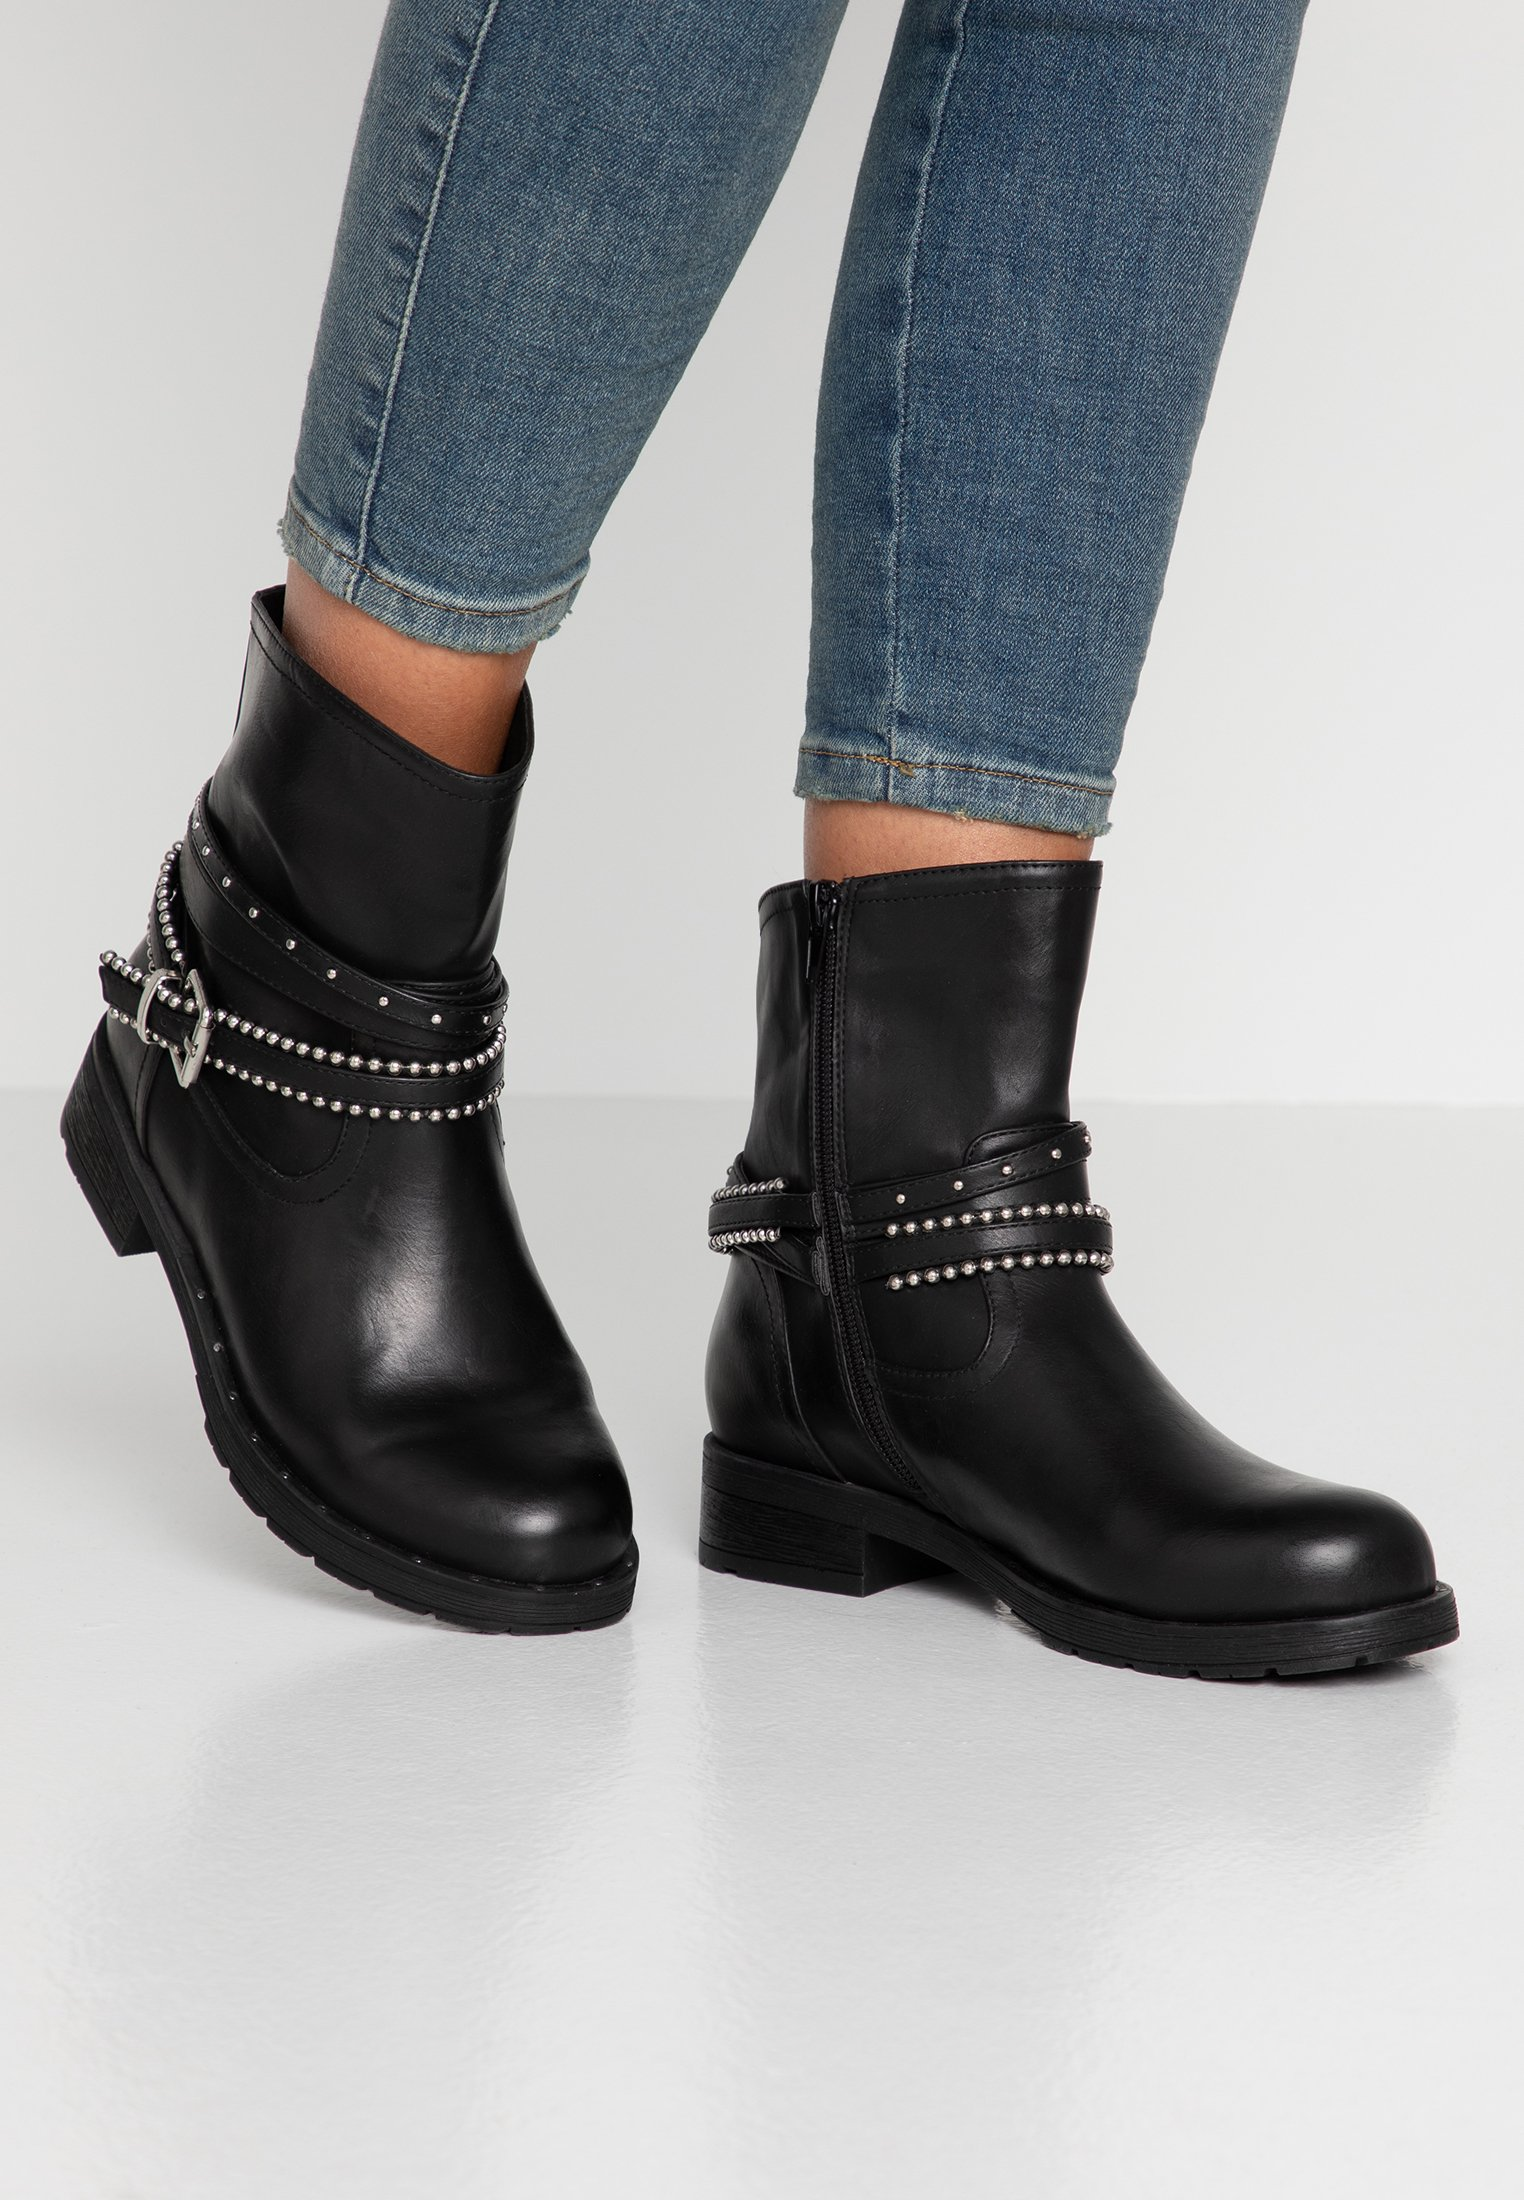 New Cheapest H.I.S Cowboy/biker ankle boot - black | women's shoes 2020 ltEds